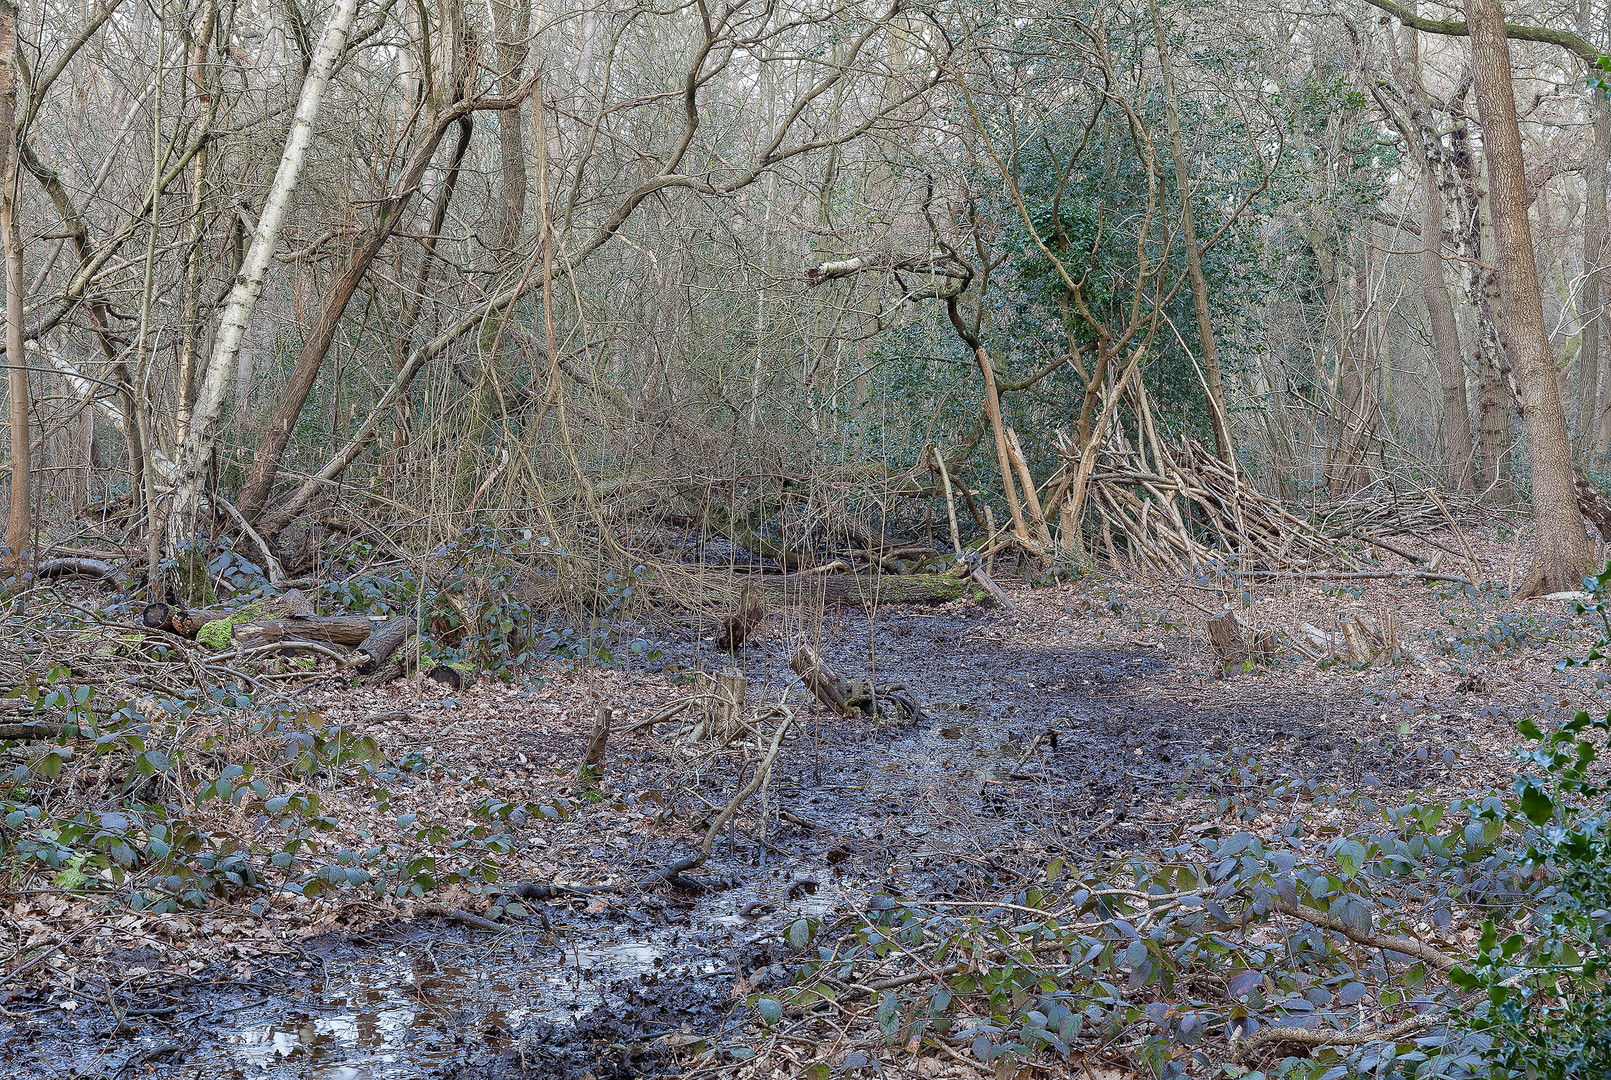 Swamp and den in woodlands, Wimbledon Common, London, England, UK.